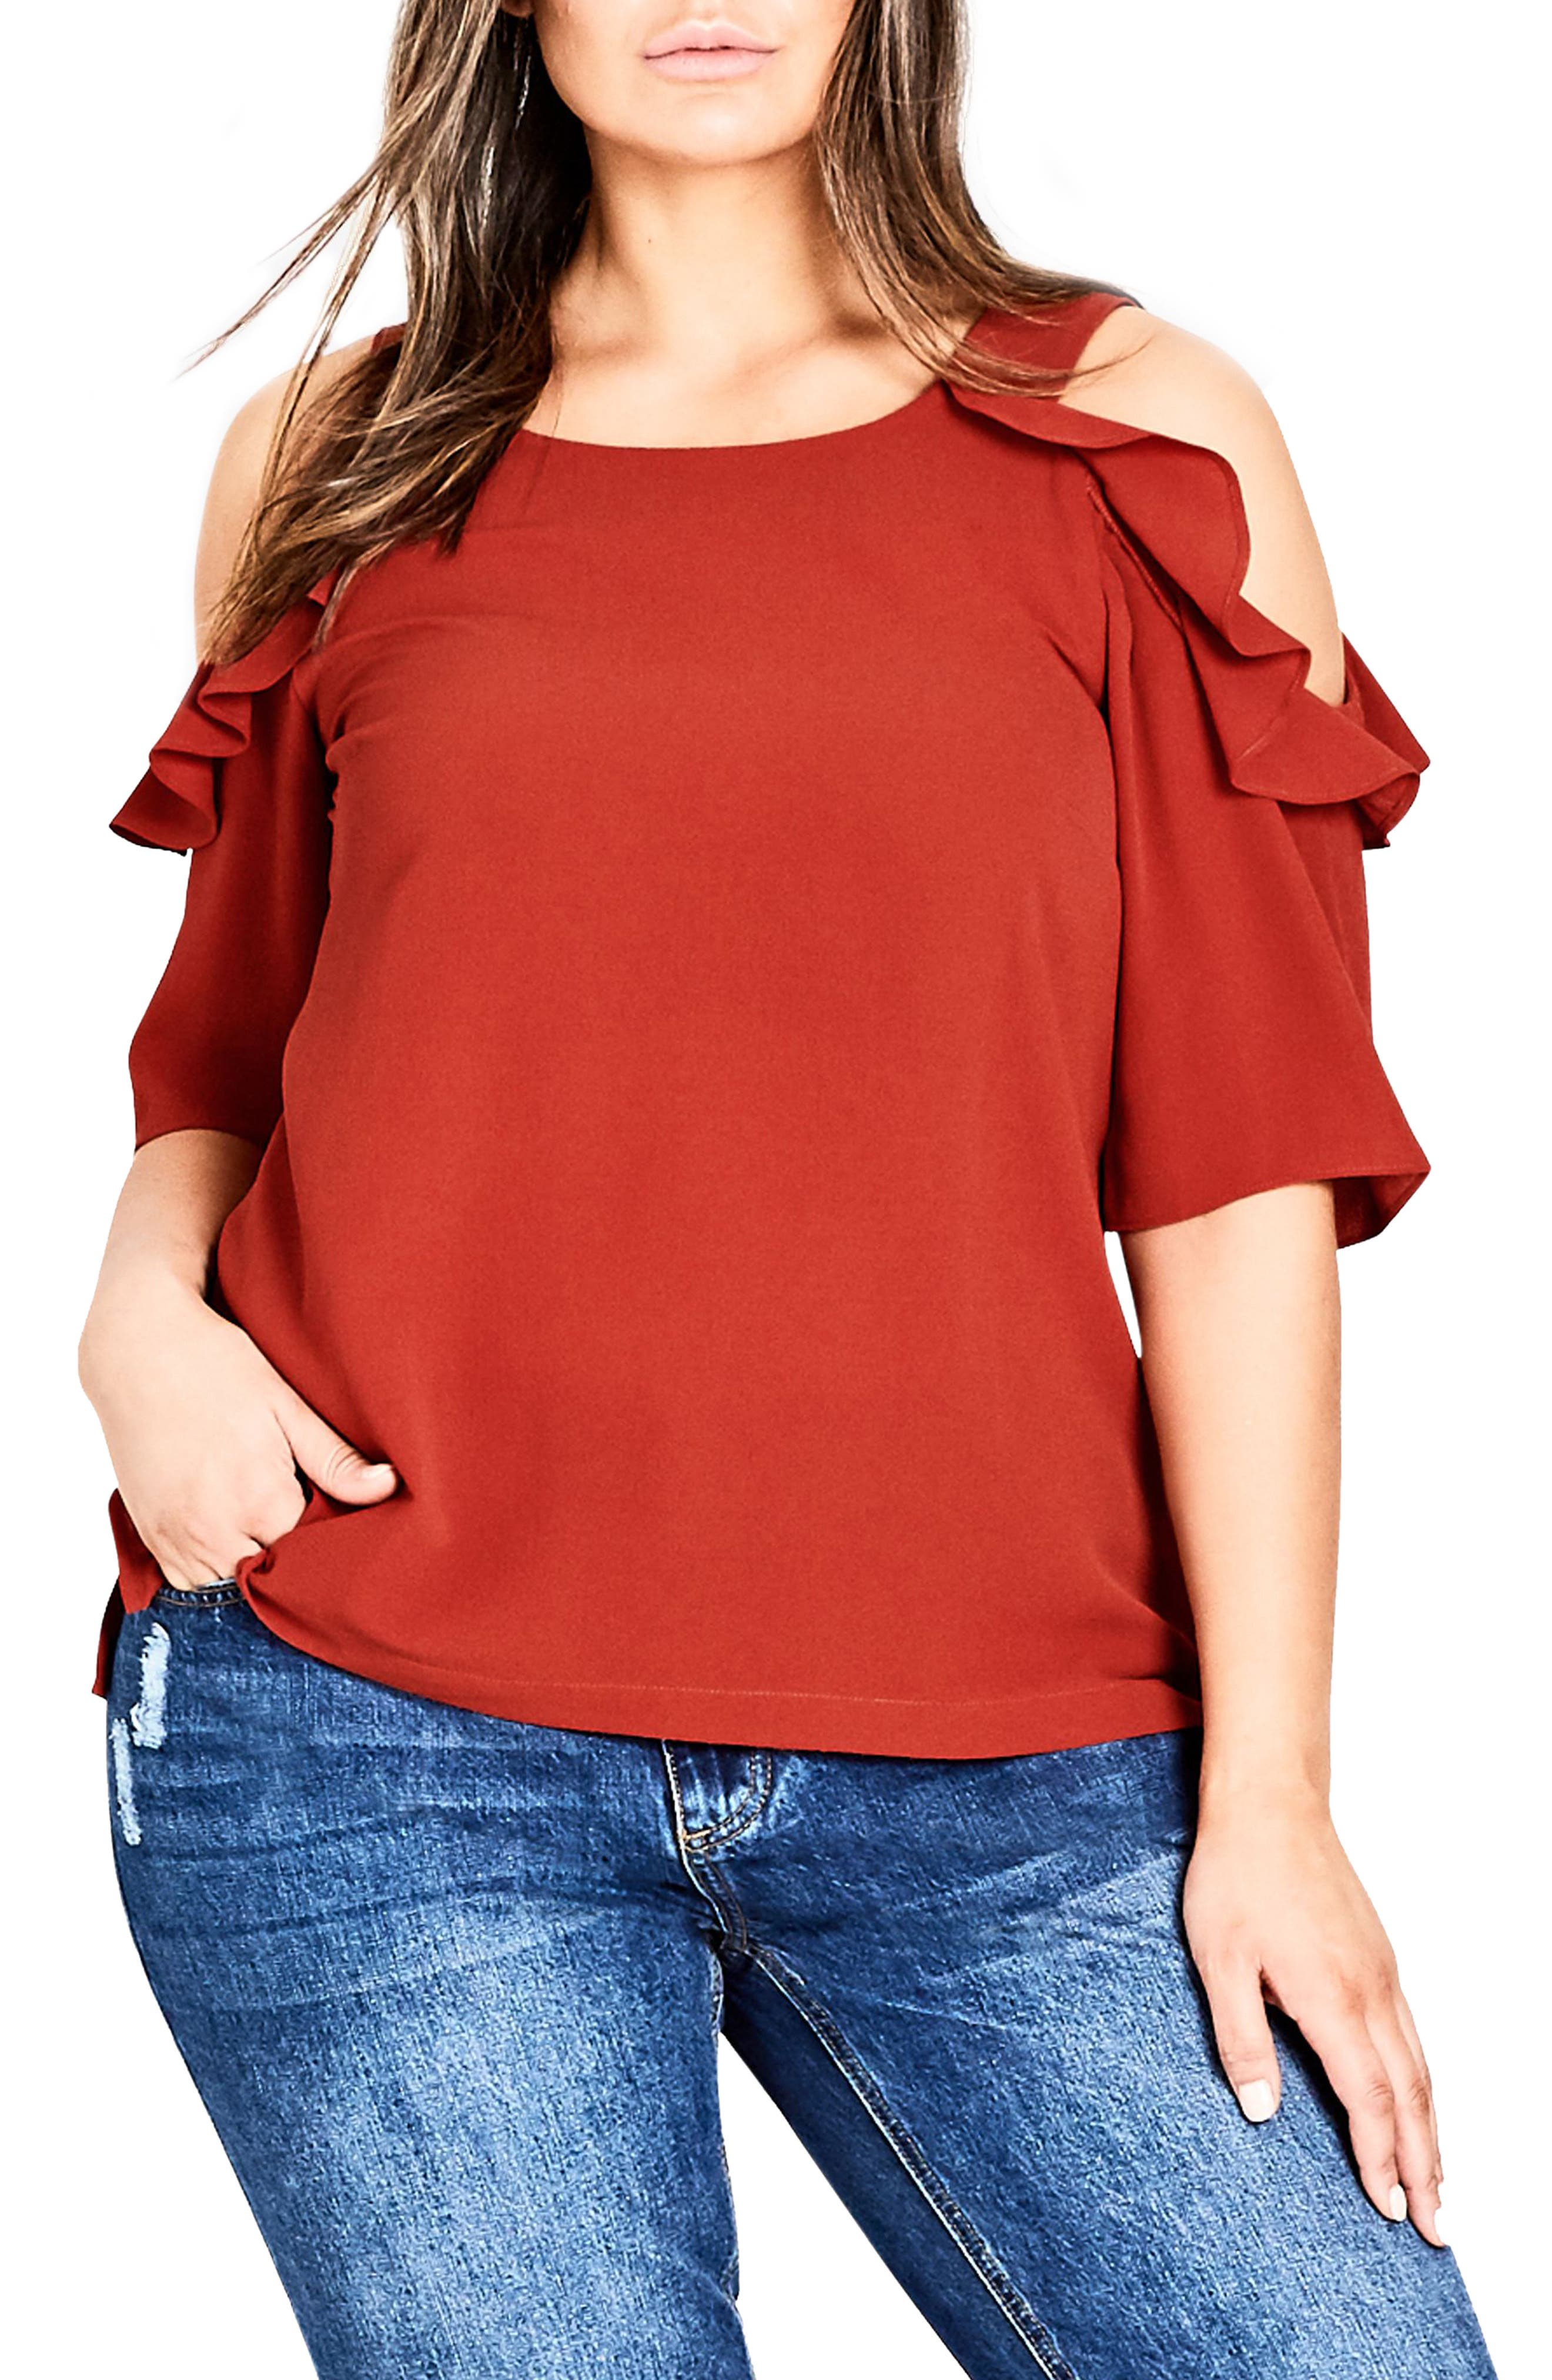 Alternate Image 1 Selected - City Chic Wild Sleeve Cold Shoulder Top (Plus Size)